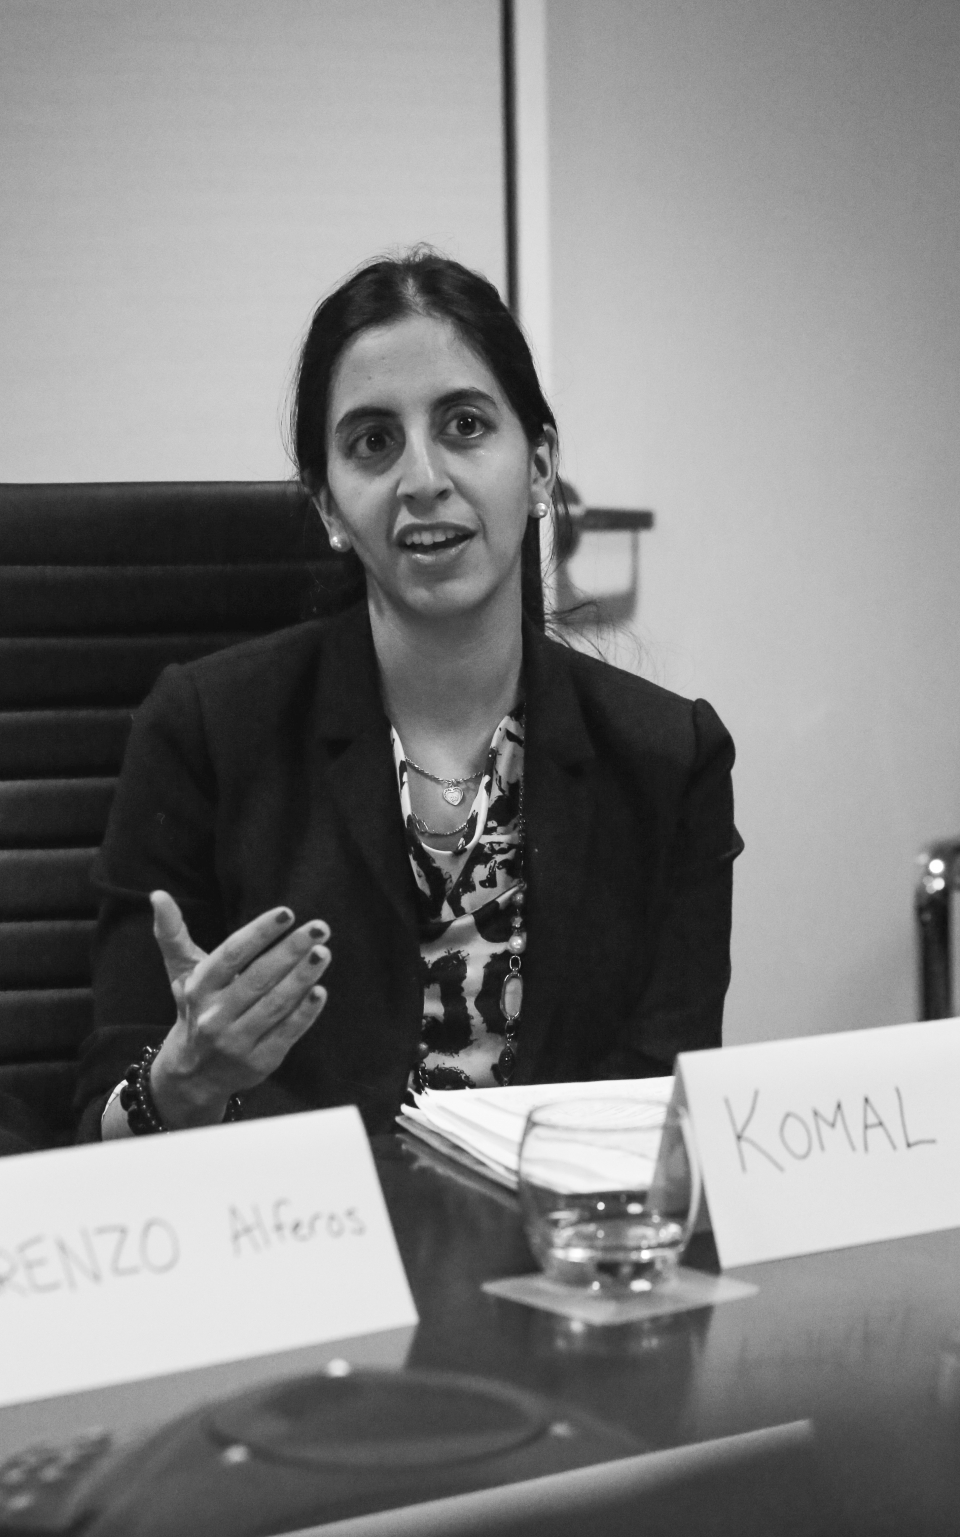 "Young adult female sits at a conference table, with a glass of water and a name tag reads ""Komal"" in front of here - photo shot in black and white."